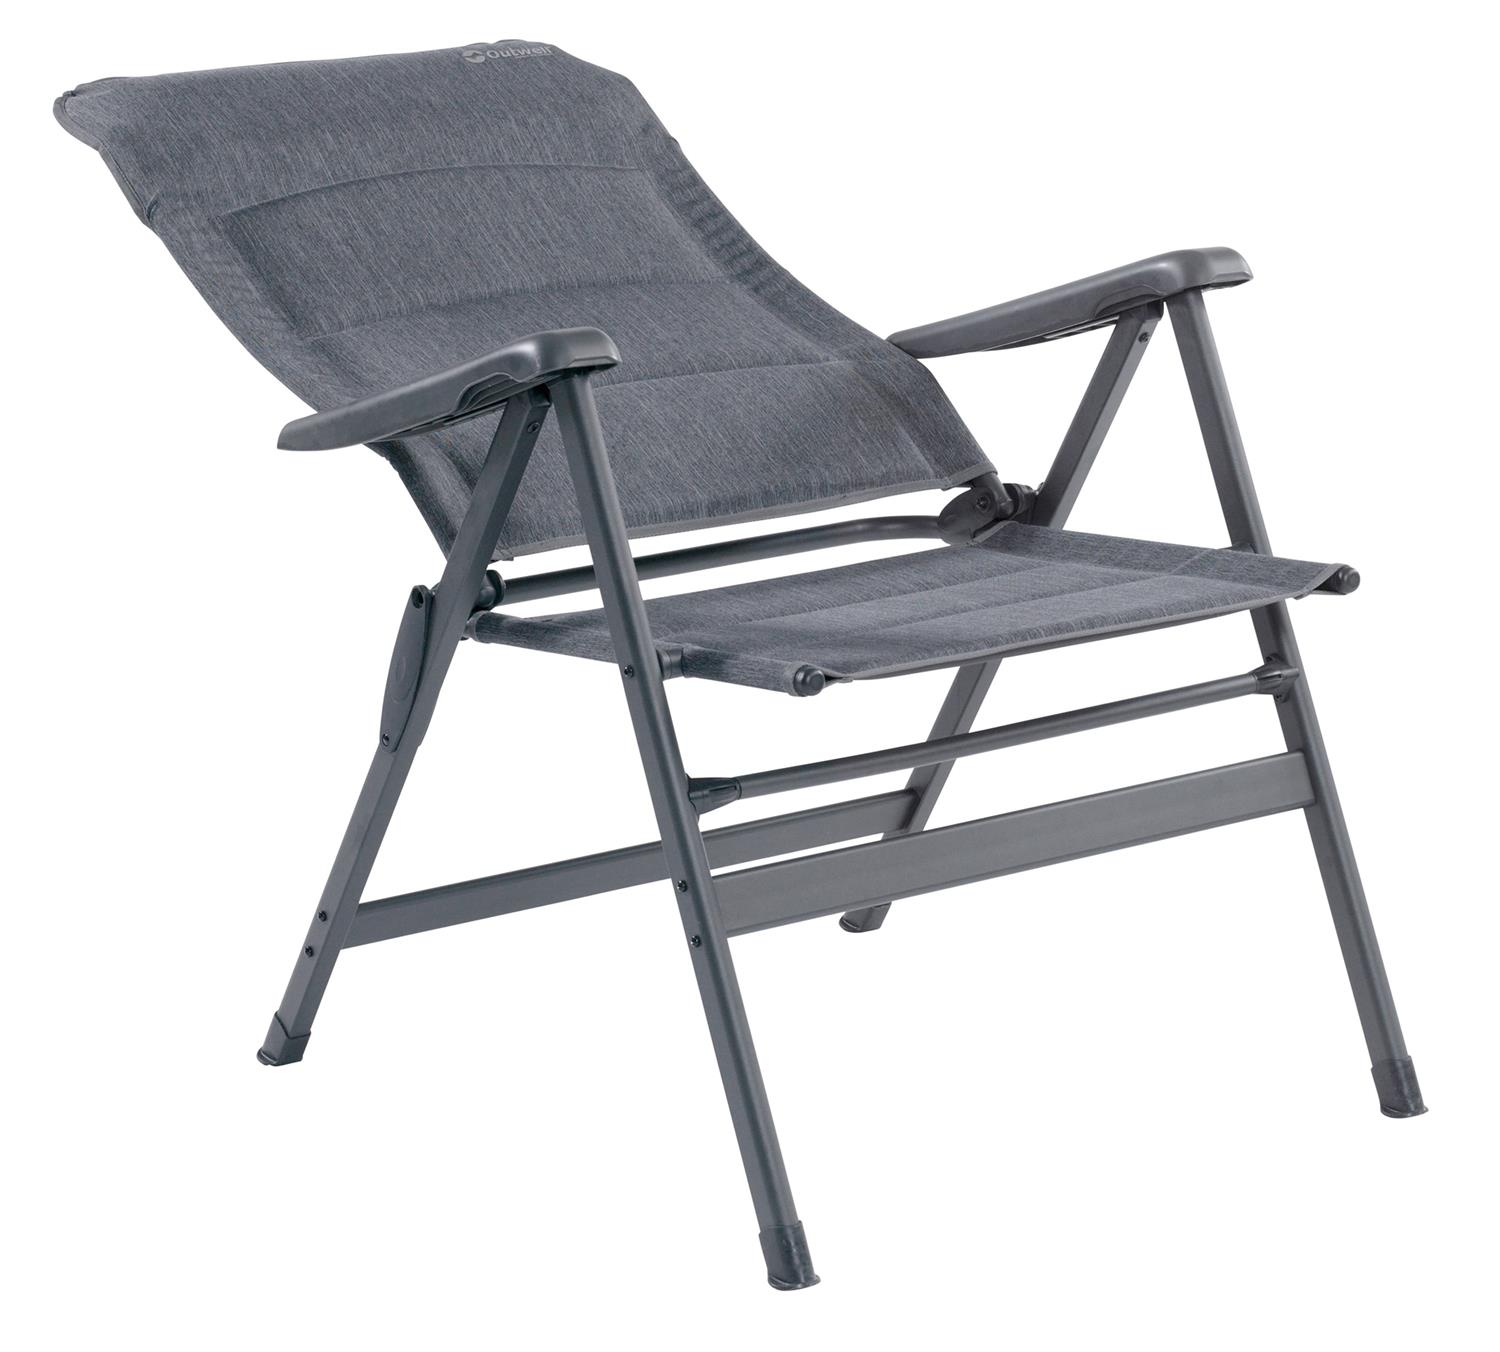 For camping motorhome Outwell Trenton Chair caravan